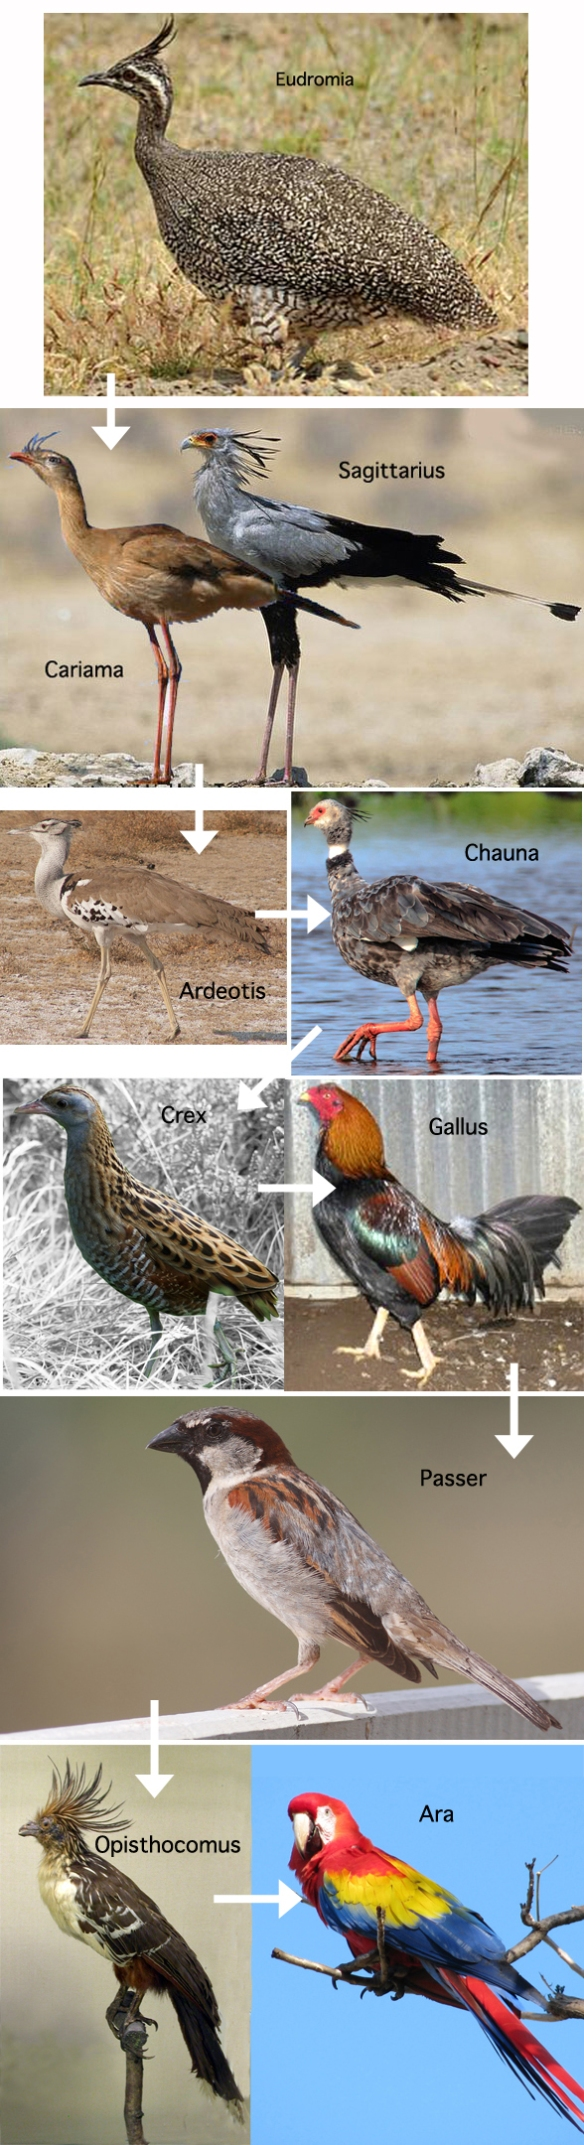 Figure 1. Taxa in the chicken, sparrow, parrot clade, subset of the LRT.